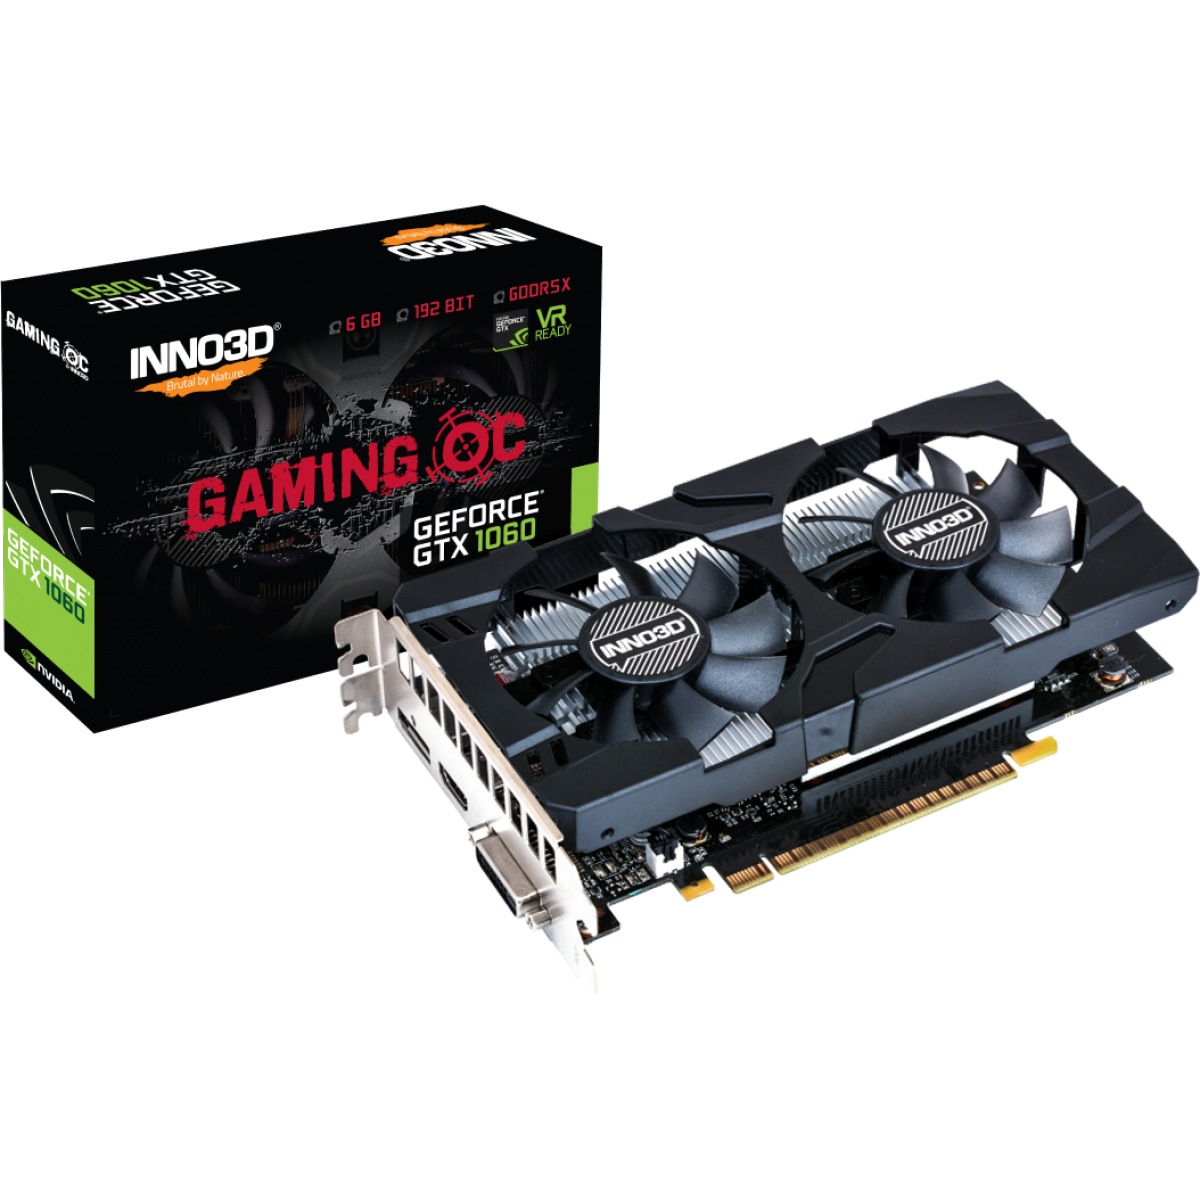 Placa de Vídeo Inno3D GeForce GTX 1060 Gaming OC, 6GB GDDR5X, 192Bit